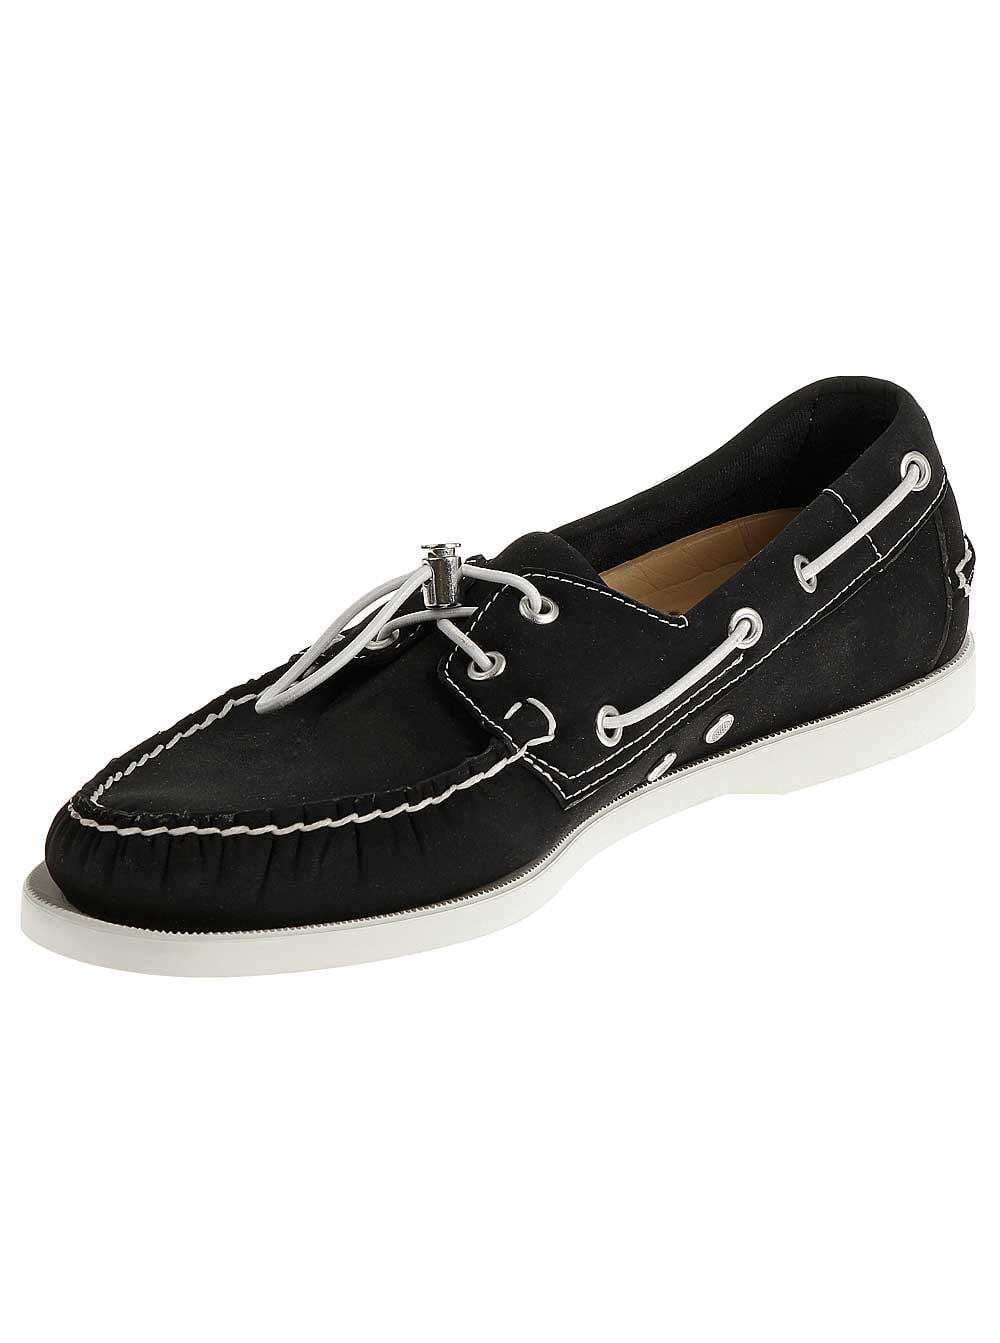 Sebago Mens Docksides Ariaprene Boat Shoes in Black Neoprene by Sebago